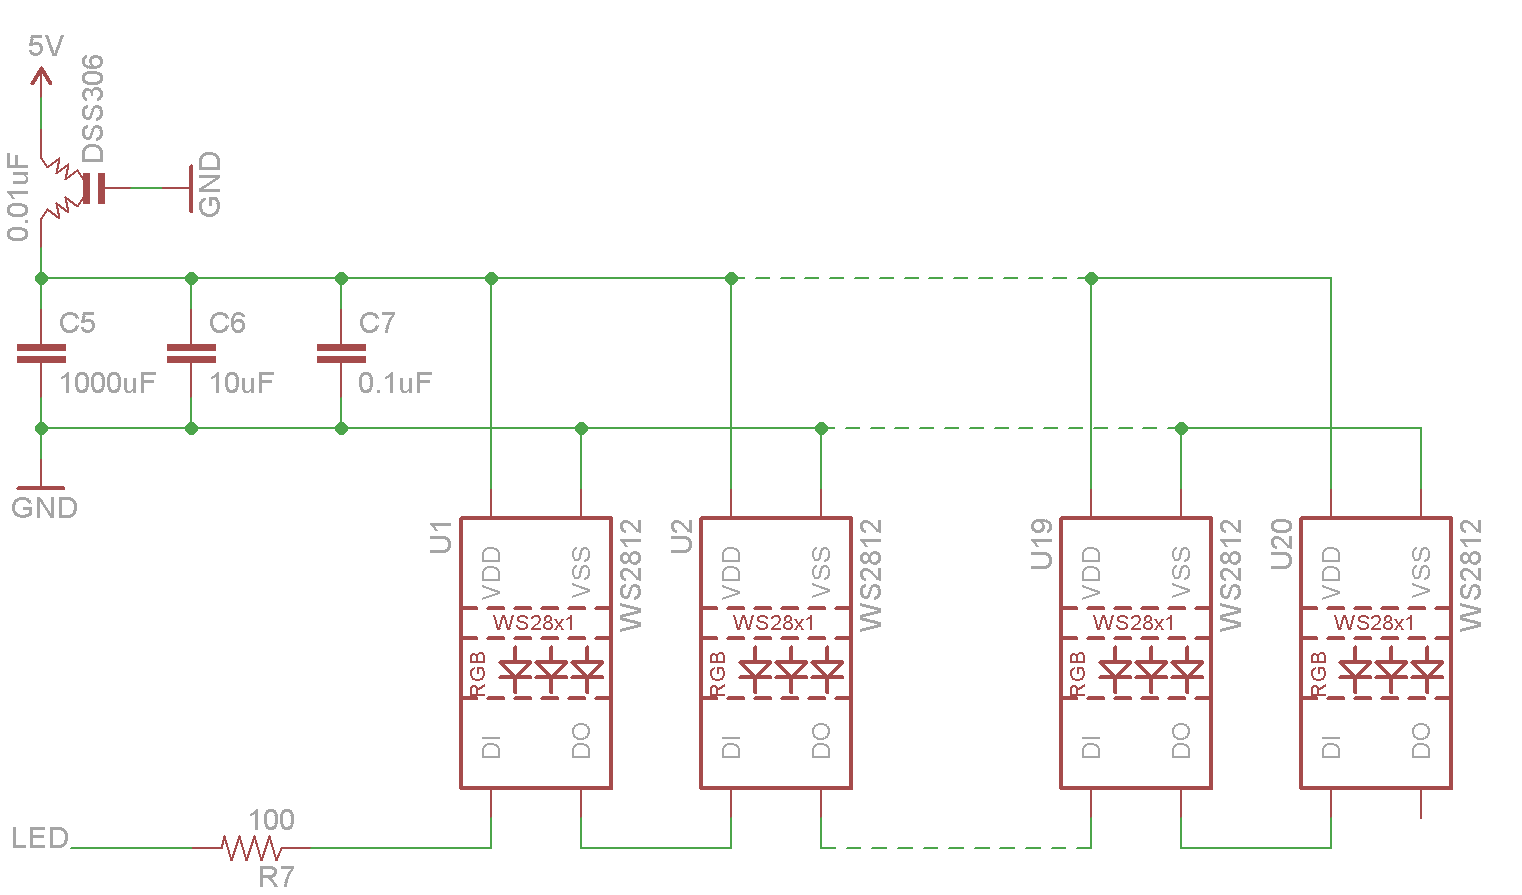 Bored Me Pic A Chip Any Daisy Chain Wiring Diagram So Simple Of Leds Might Be Wired Up Like This You Can Actually Buy These Same Neopixels Already On Metre Long Strip Or Ring